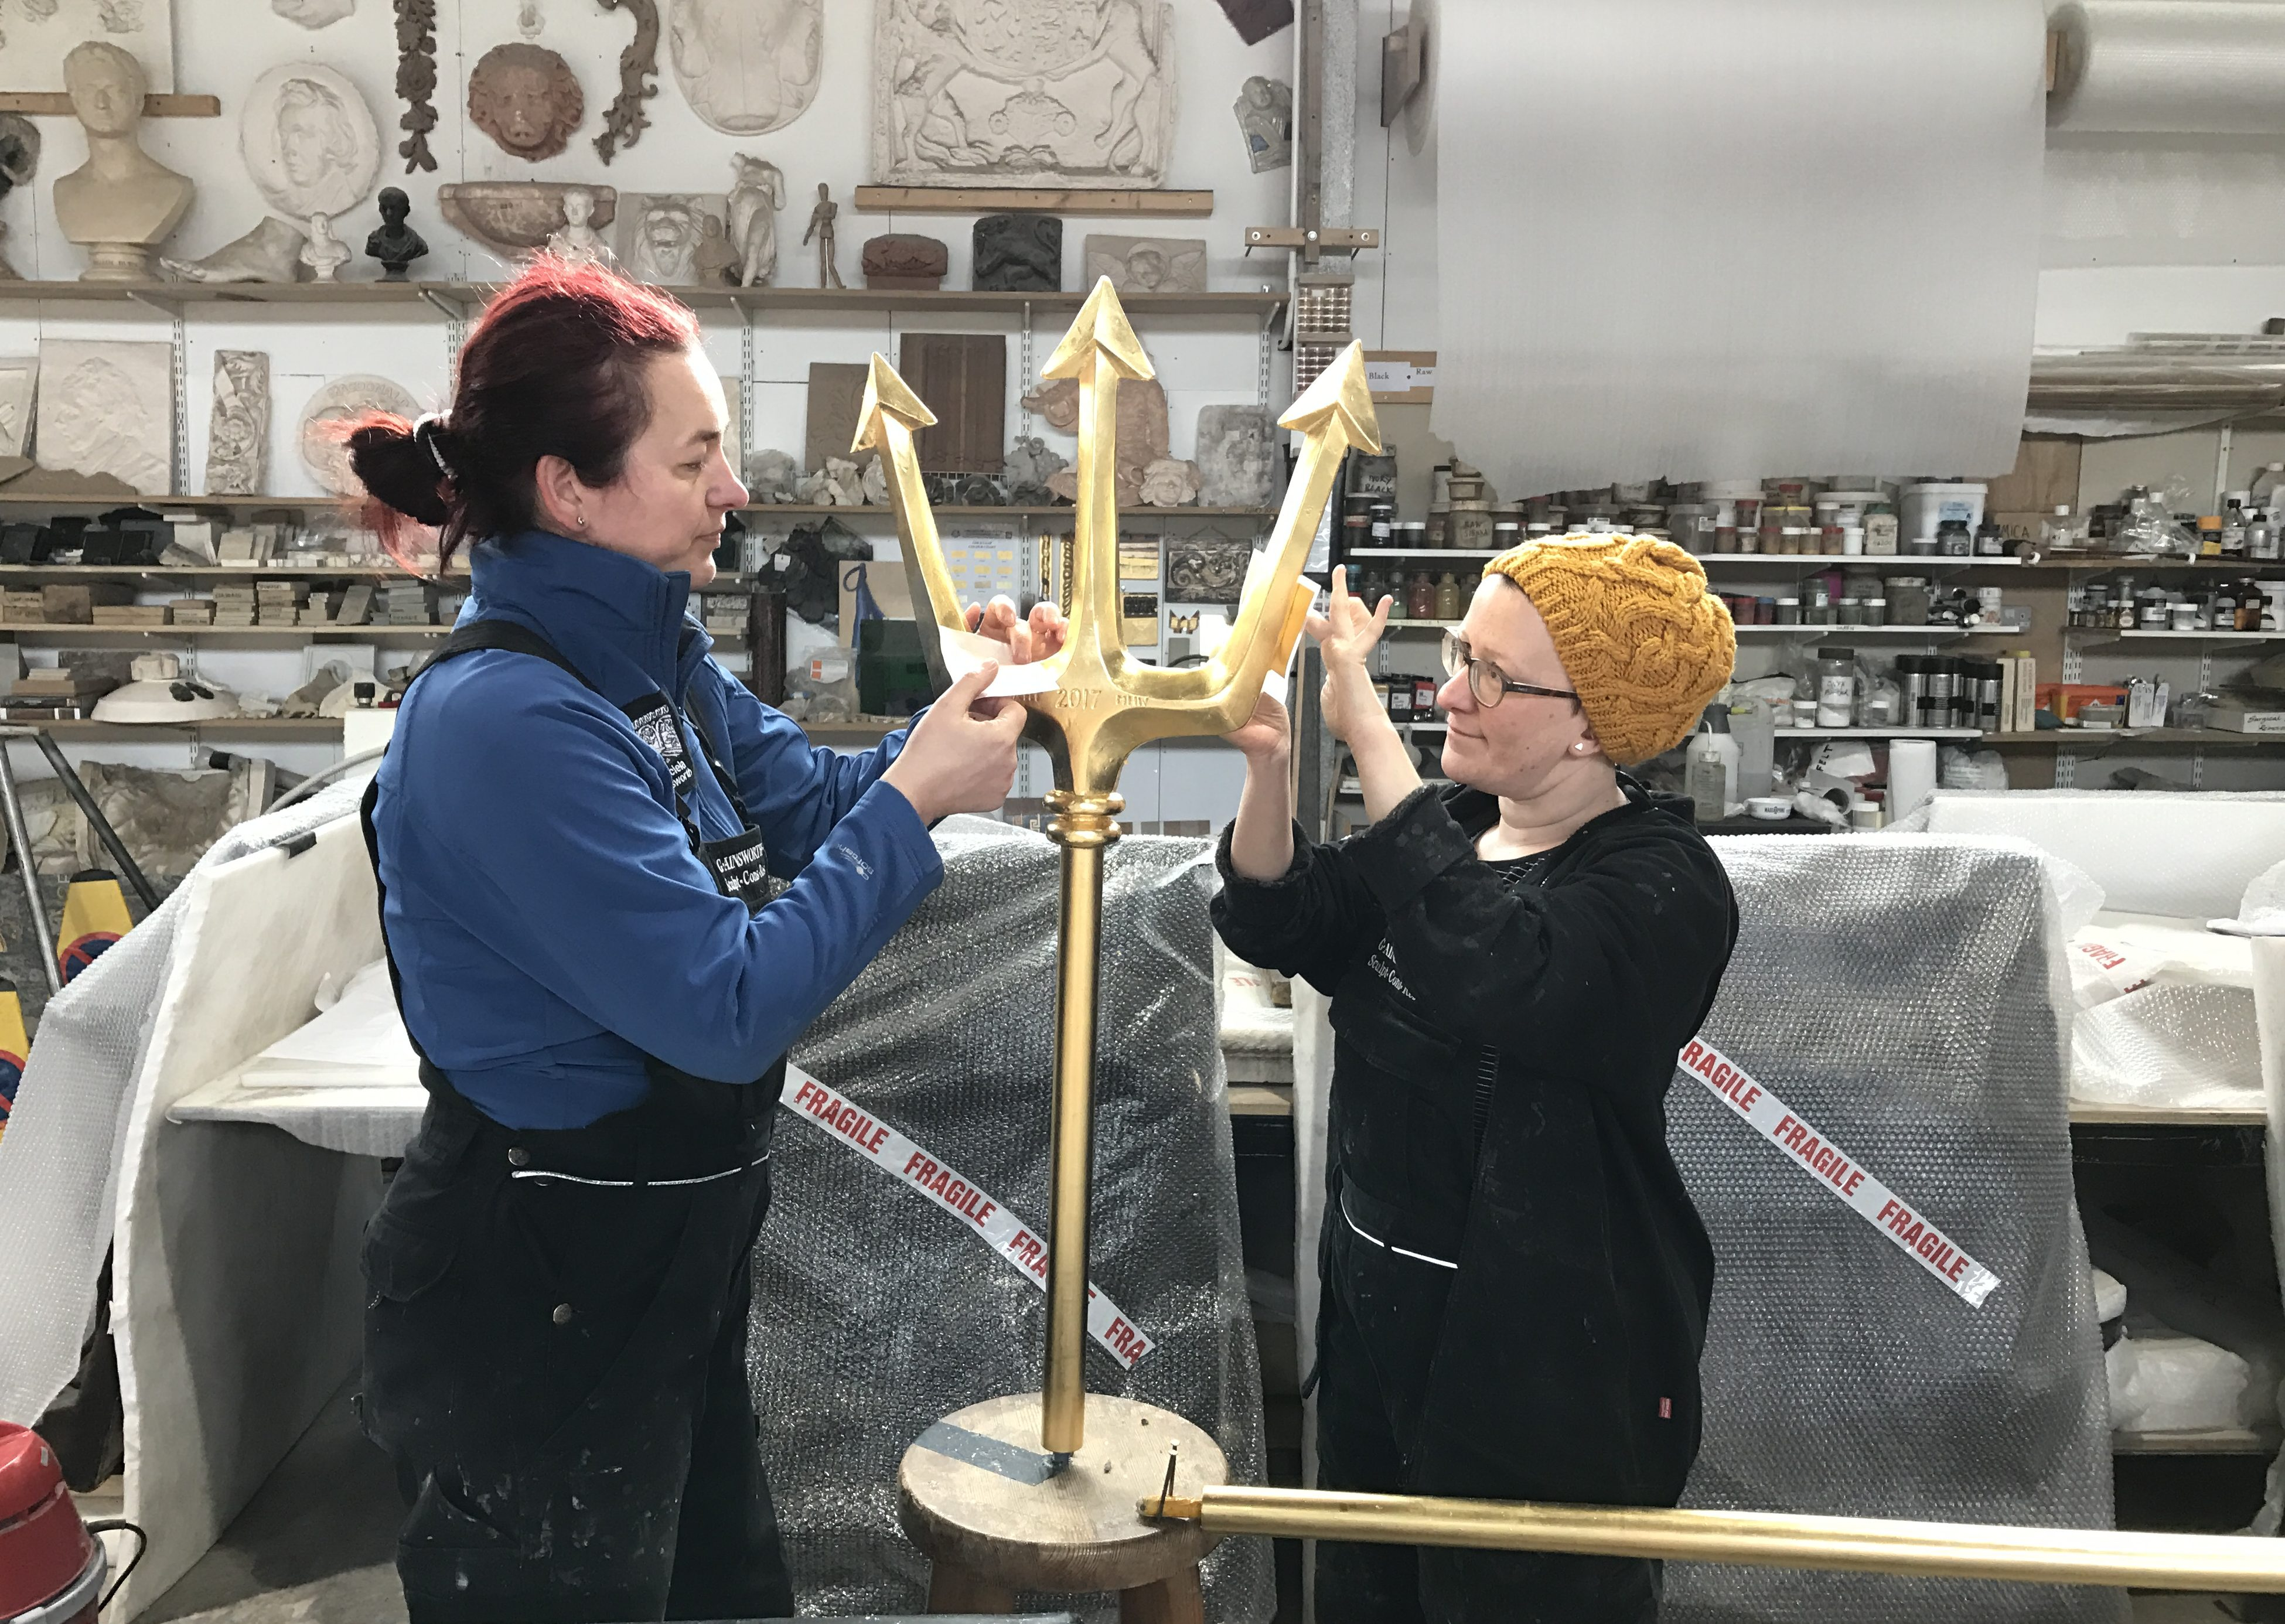 The new trident being gilded by Csilla Karsay and Ellie King of Graciela Ainsworth Sculpture Conservation.